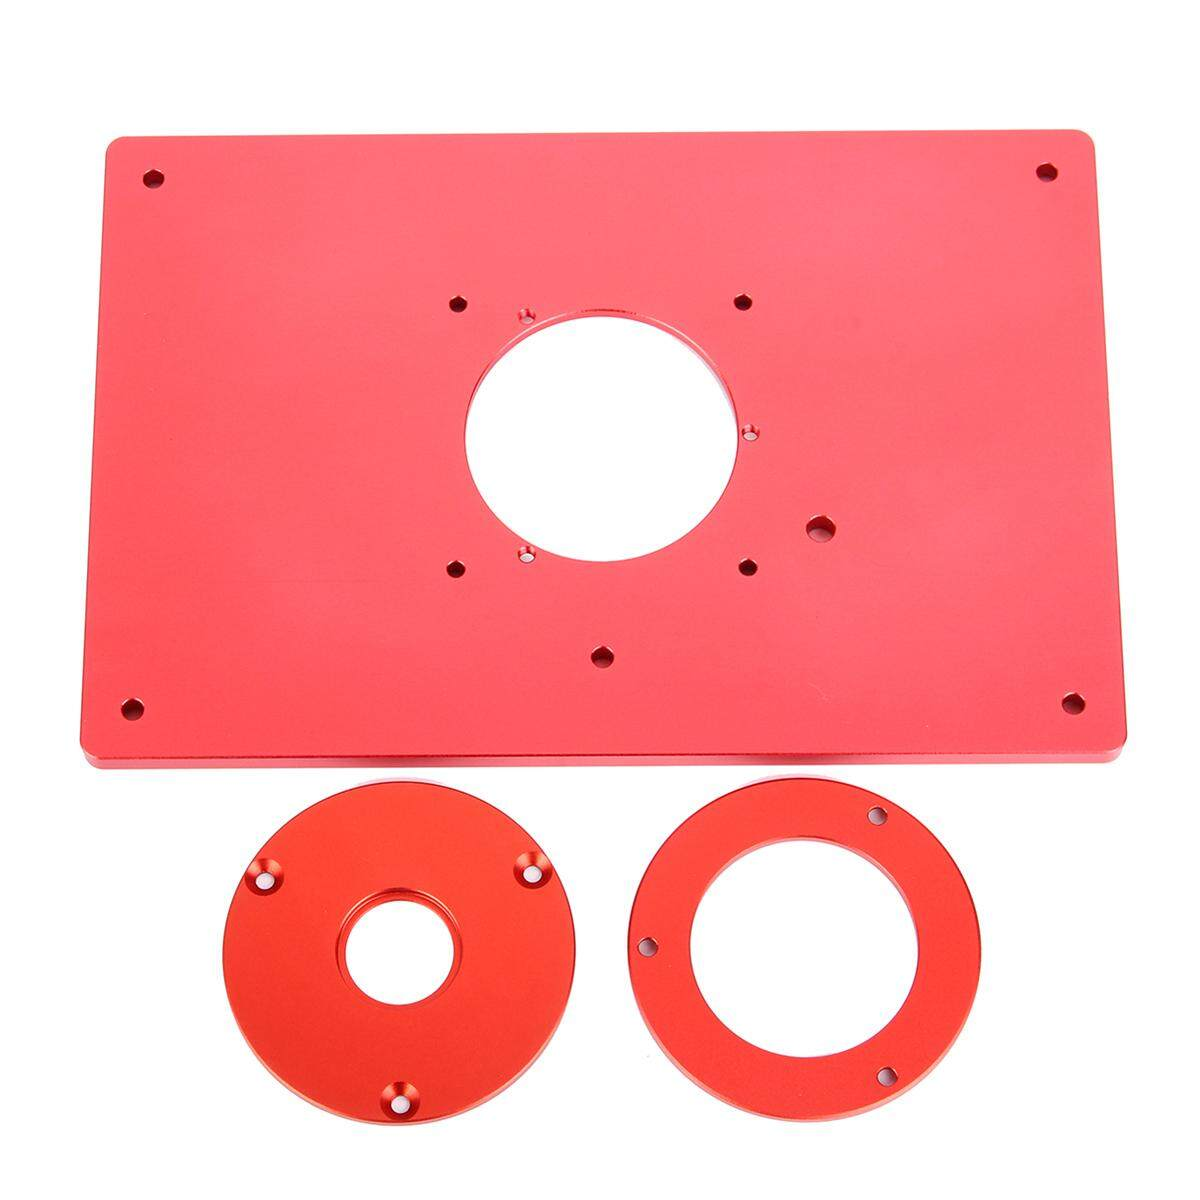 Universal Router Table Insert Plate For Woodworking Engraving Machine 200*300*10MM - intl